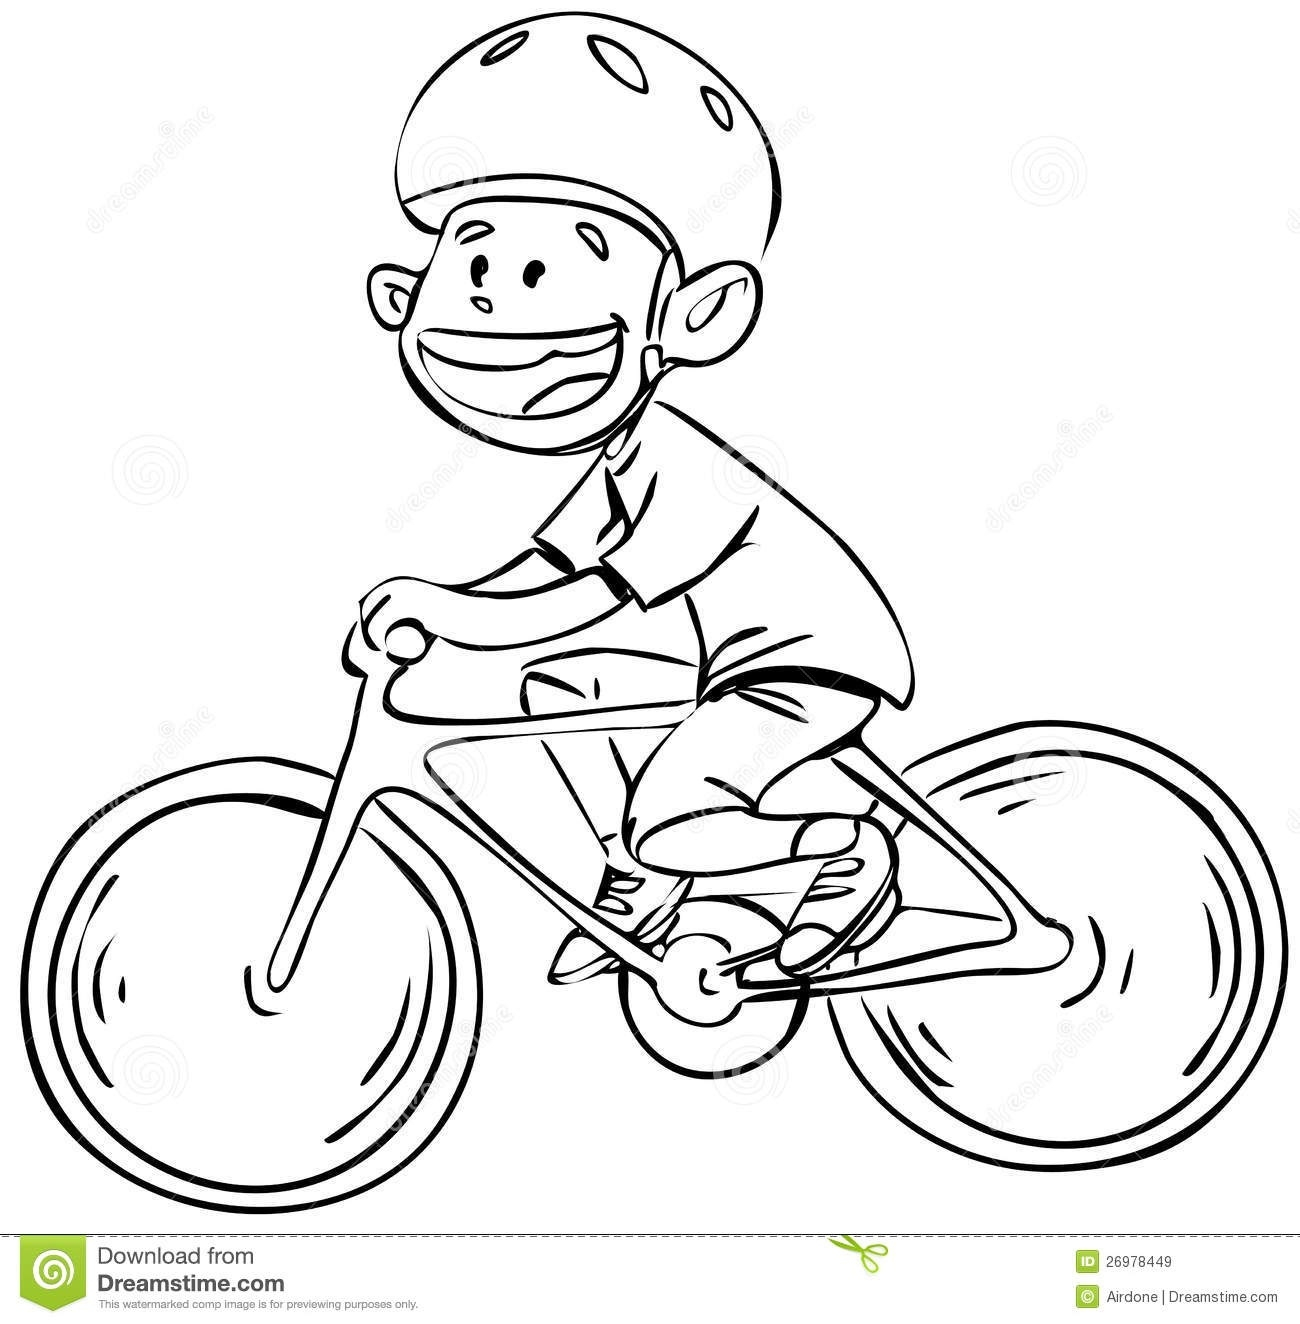 Cycling clipart black and white. Bicycle kind of letters clipart library